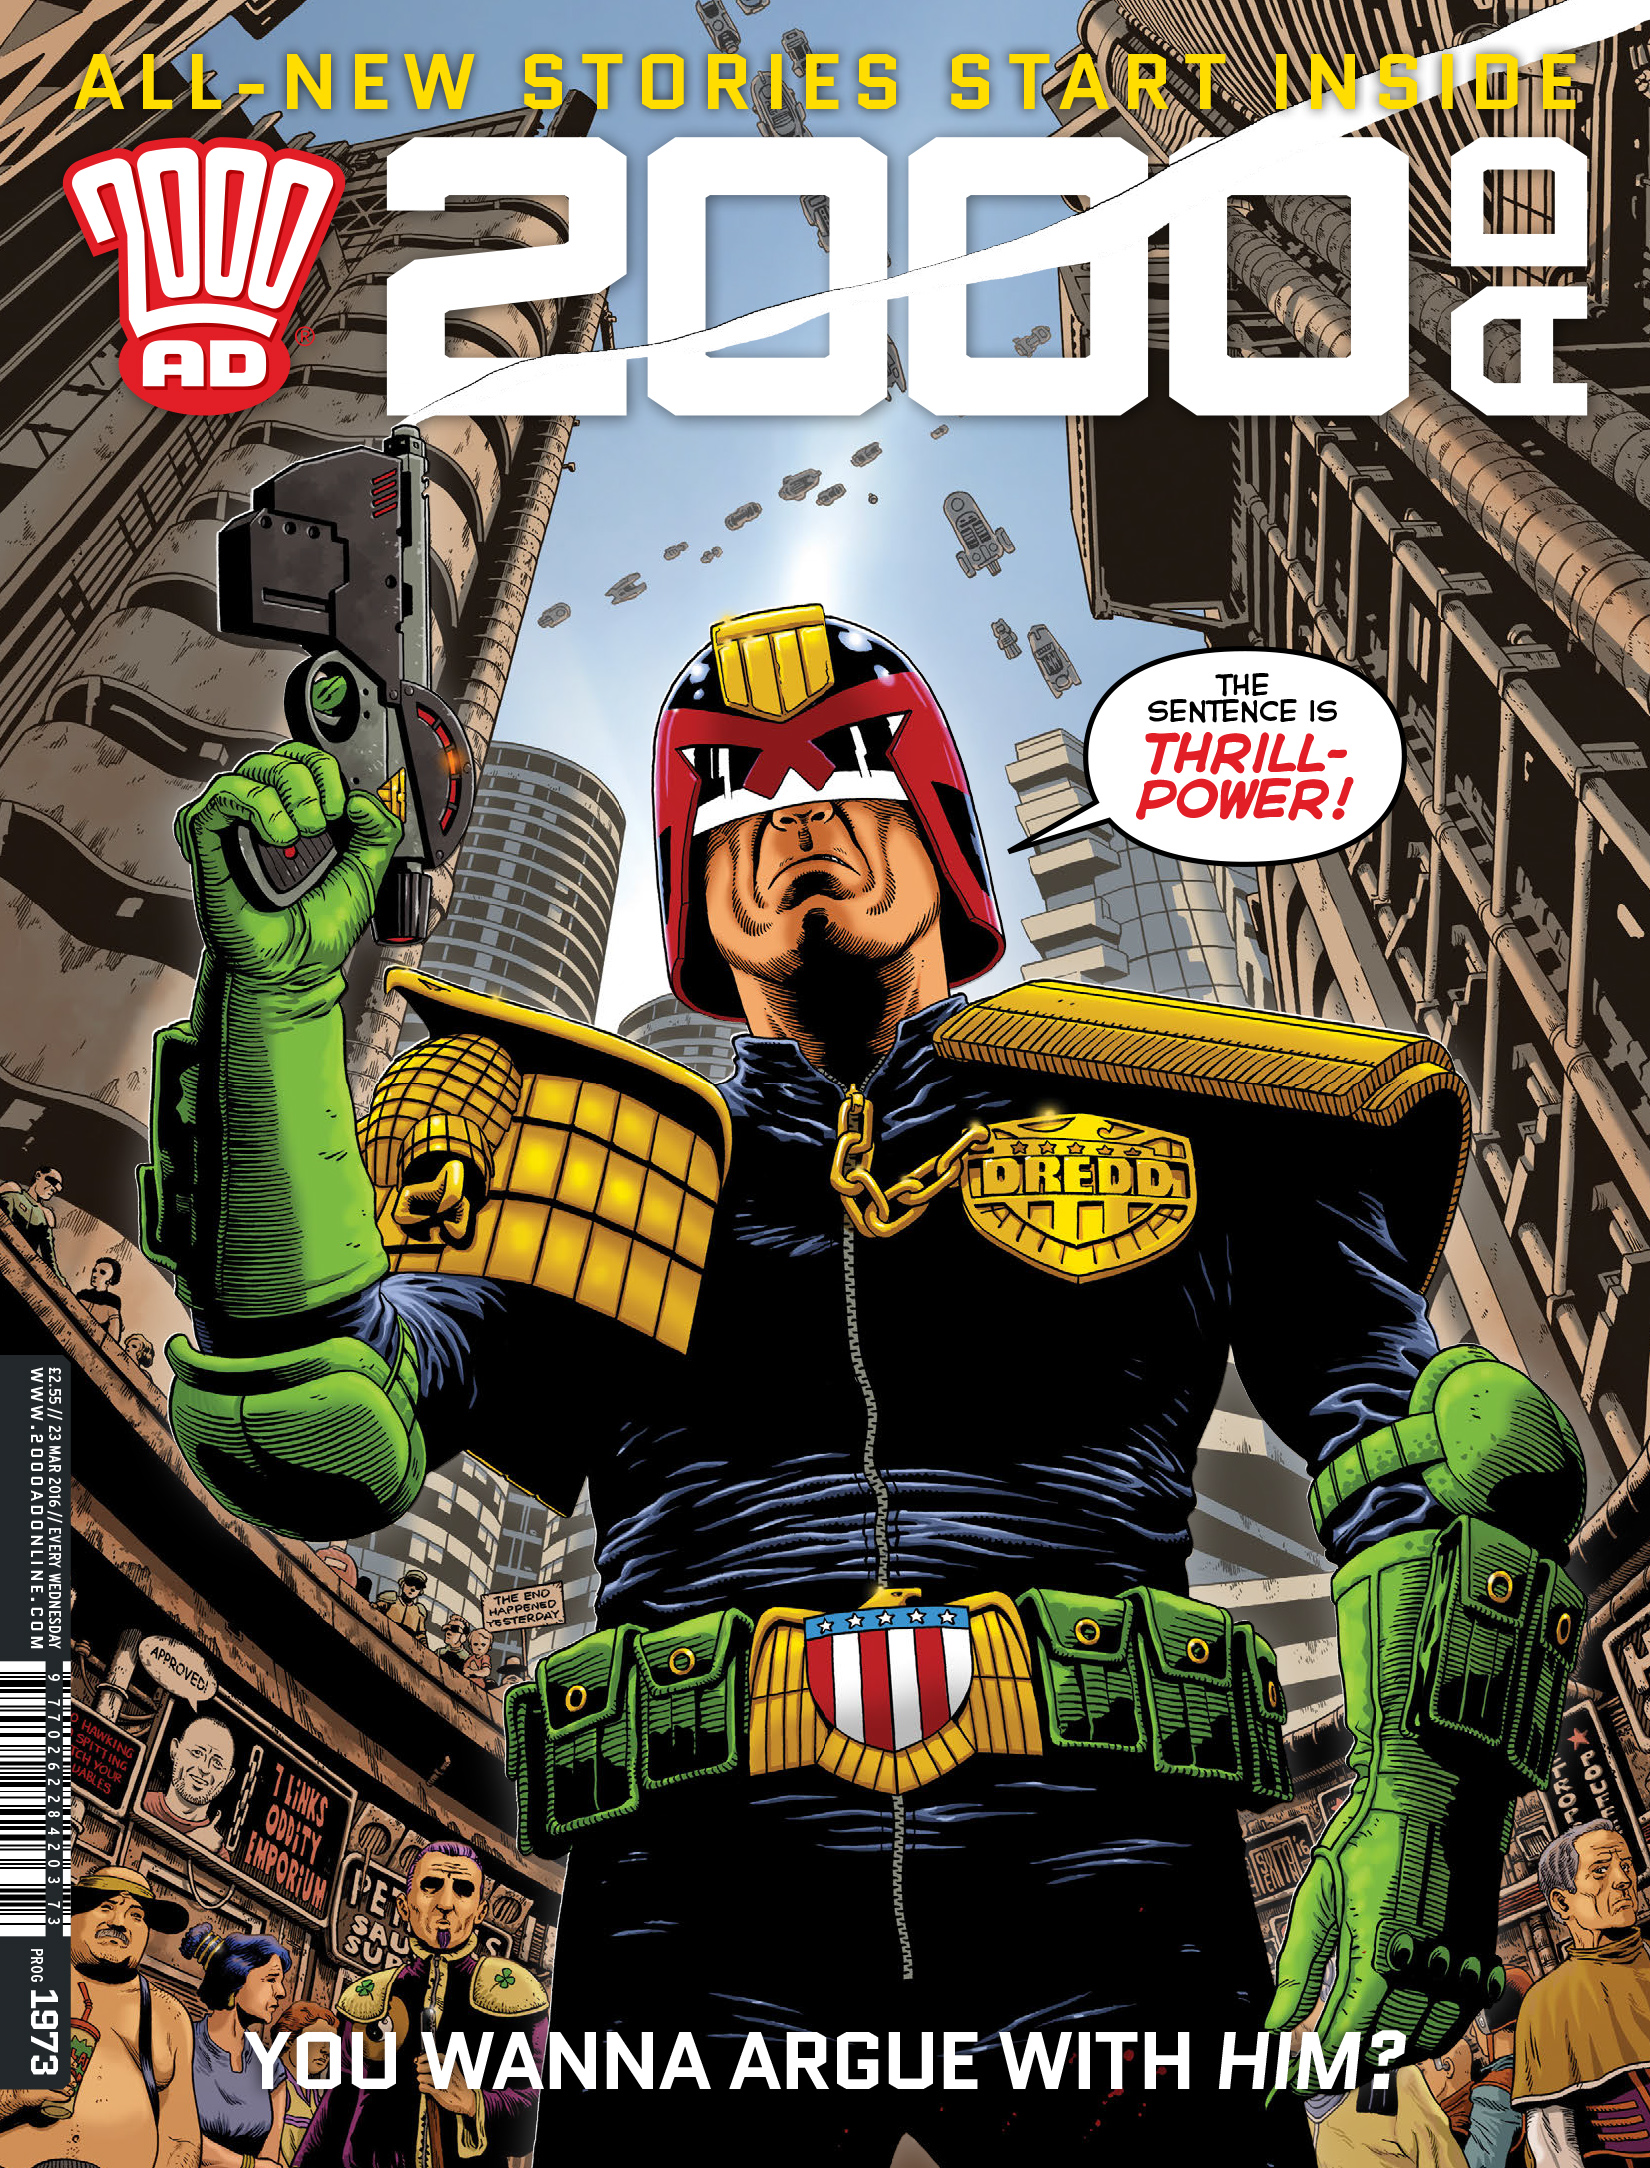 2000 AD 1973 Page 1